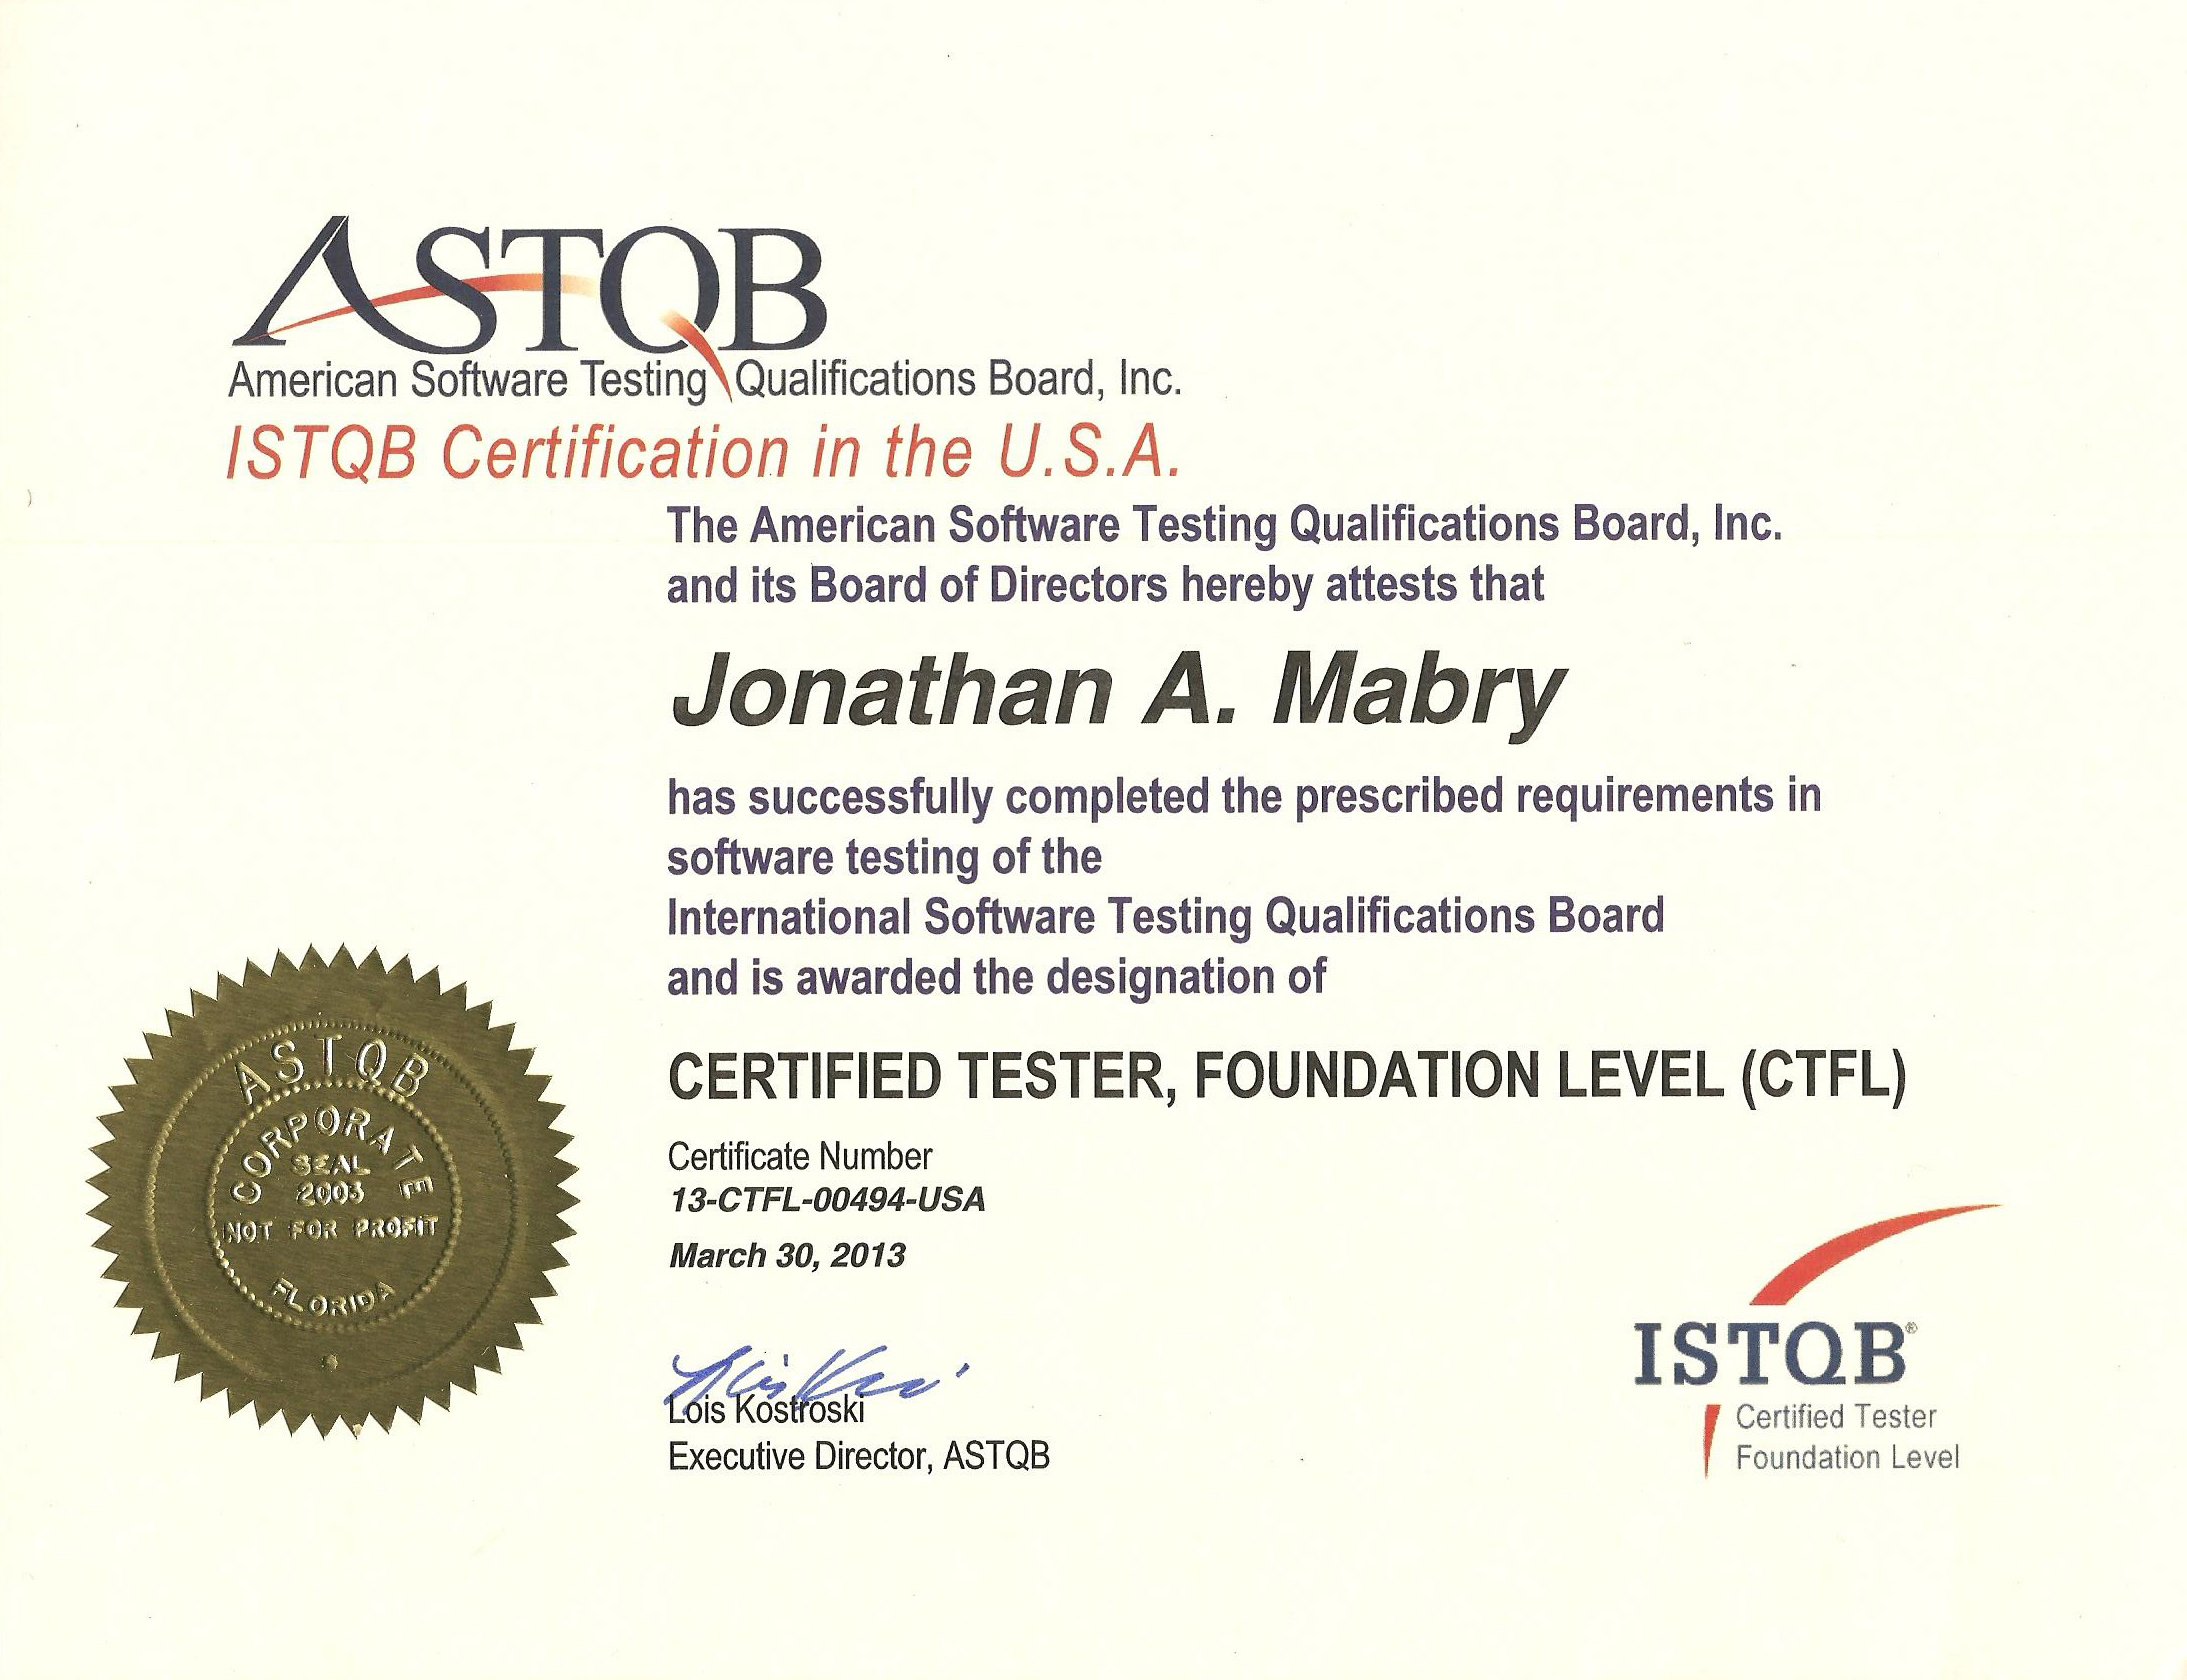 Certifications j mabry astqb cert image 1betcityfo Image collections